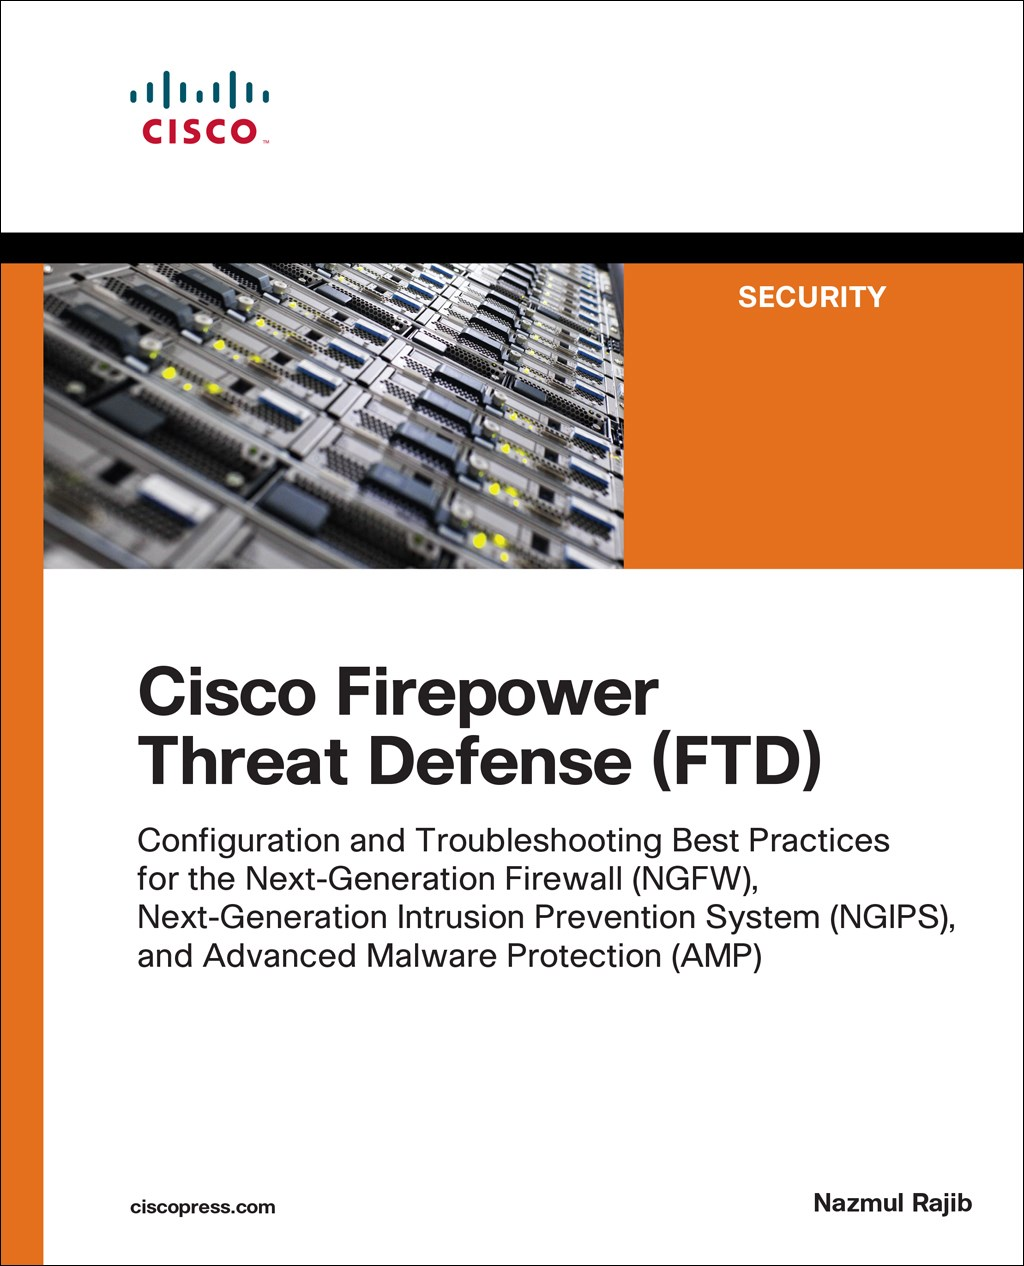 Cisco Firepower Threat Defense (FTD): Configuration and Troubleshooting Best Practices for the Next-Generation Firewall (NGFW), Next-Generation Intrusion Prevention System (NGIPS), and Advanced Malware Protection (AMP)